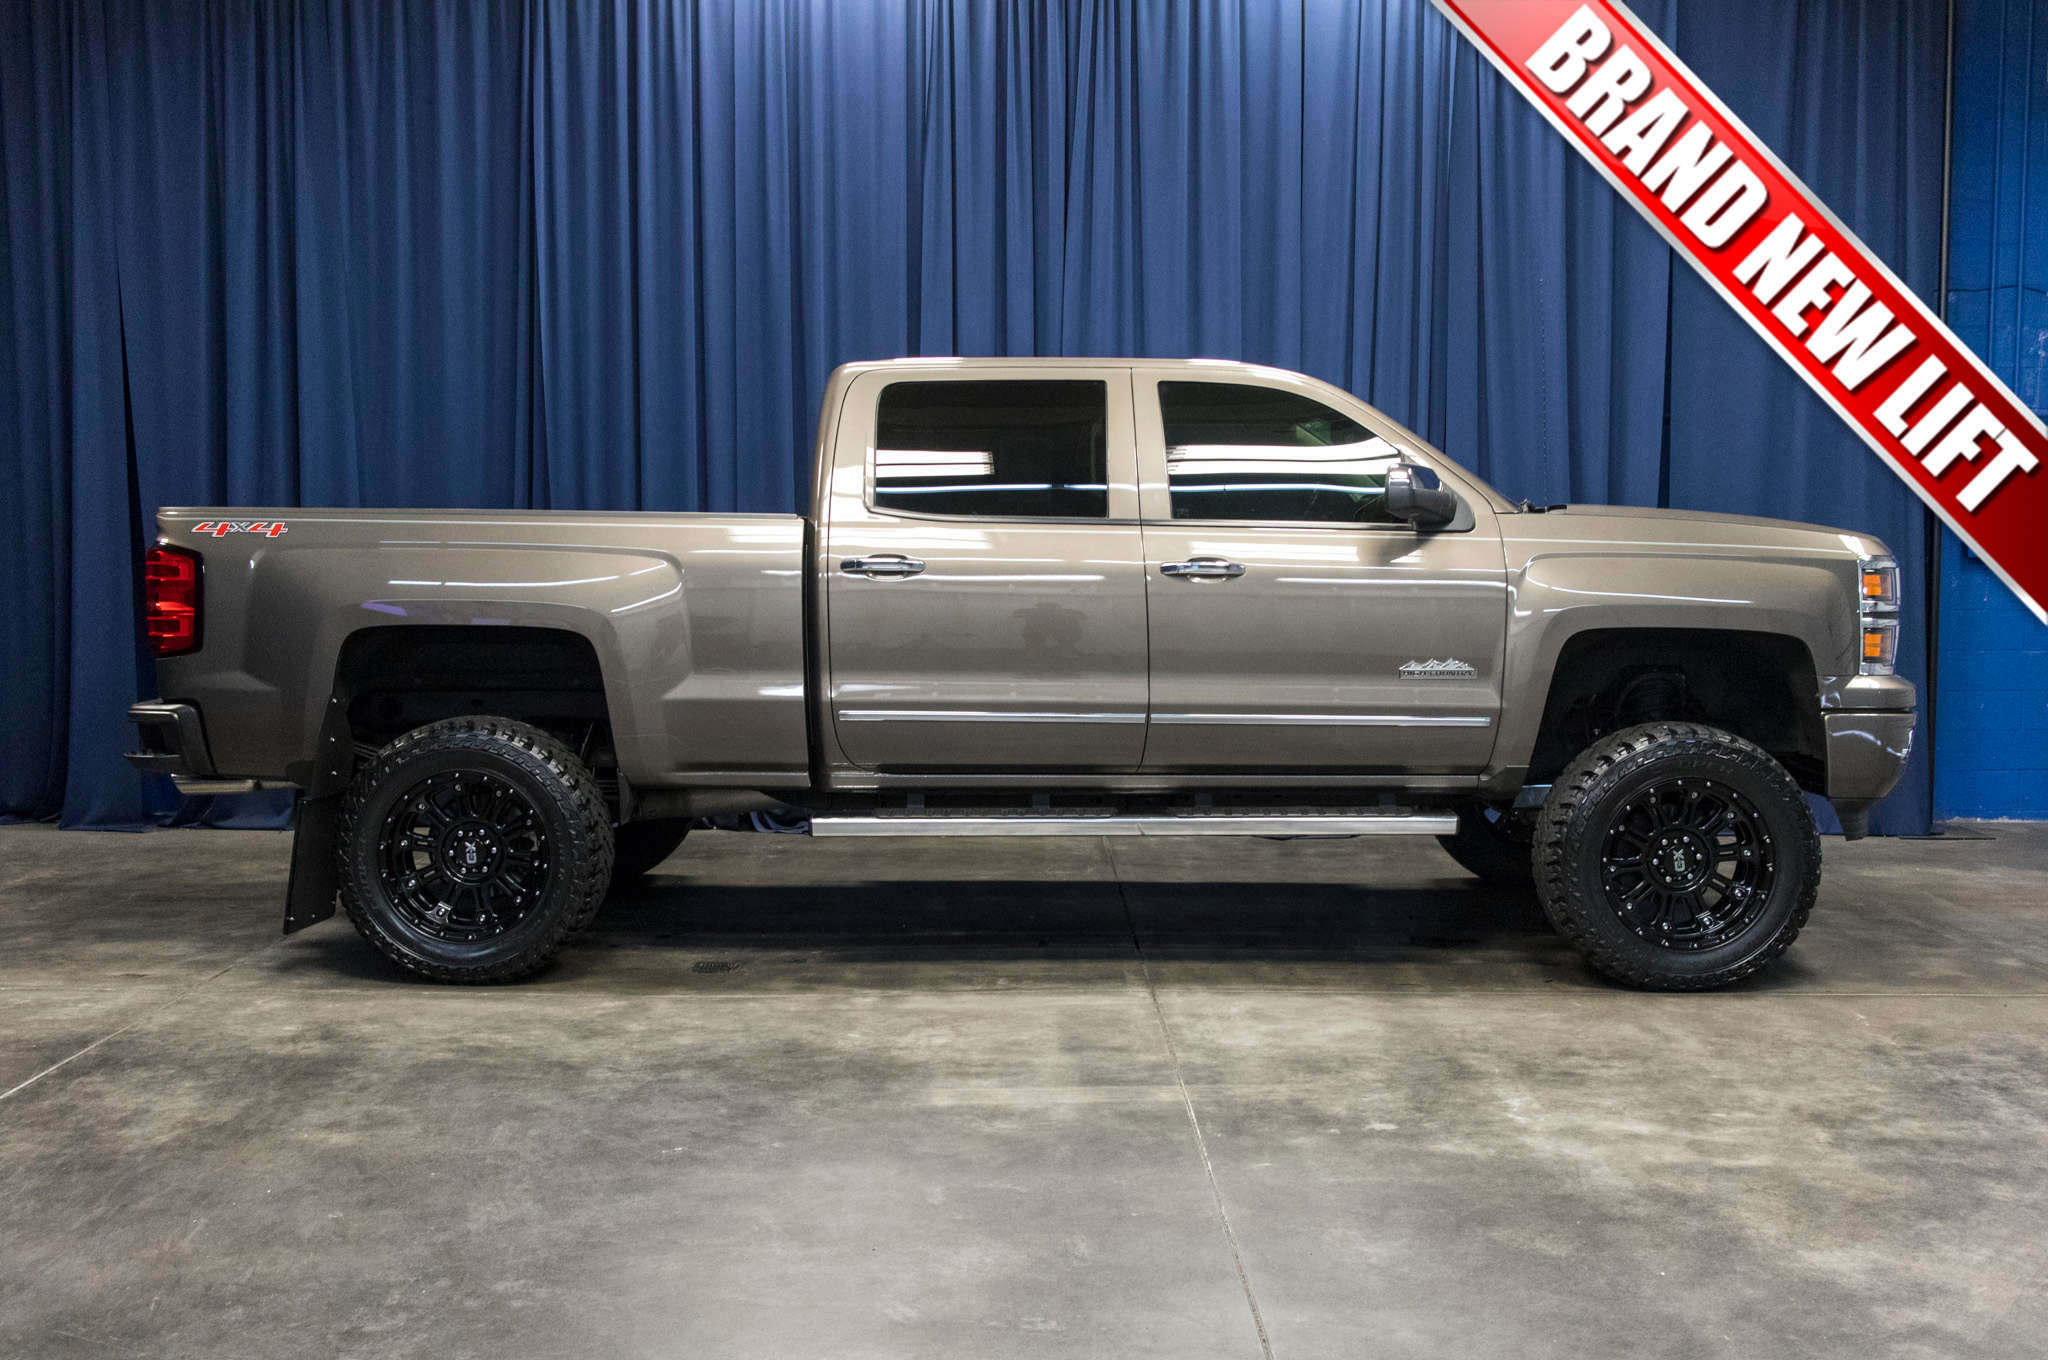 2014 Chevy Silverado Lifted >> Used Lifted 2014 Chevrolet Silverado 1500 High Country 4x4 Truck For